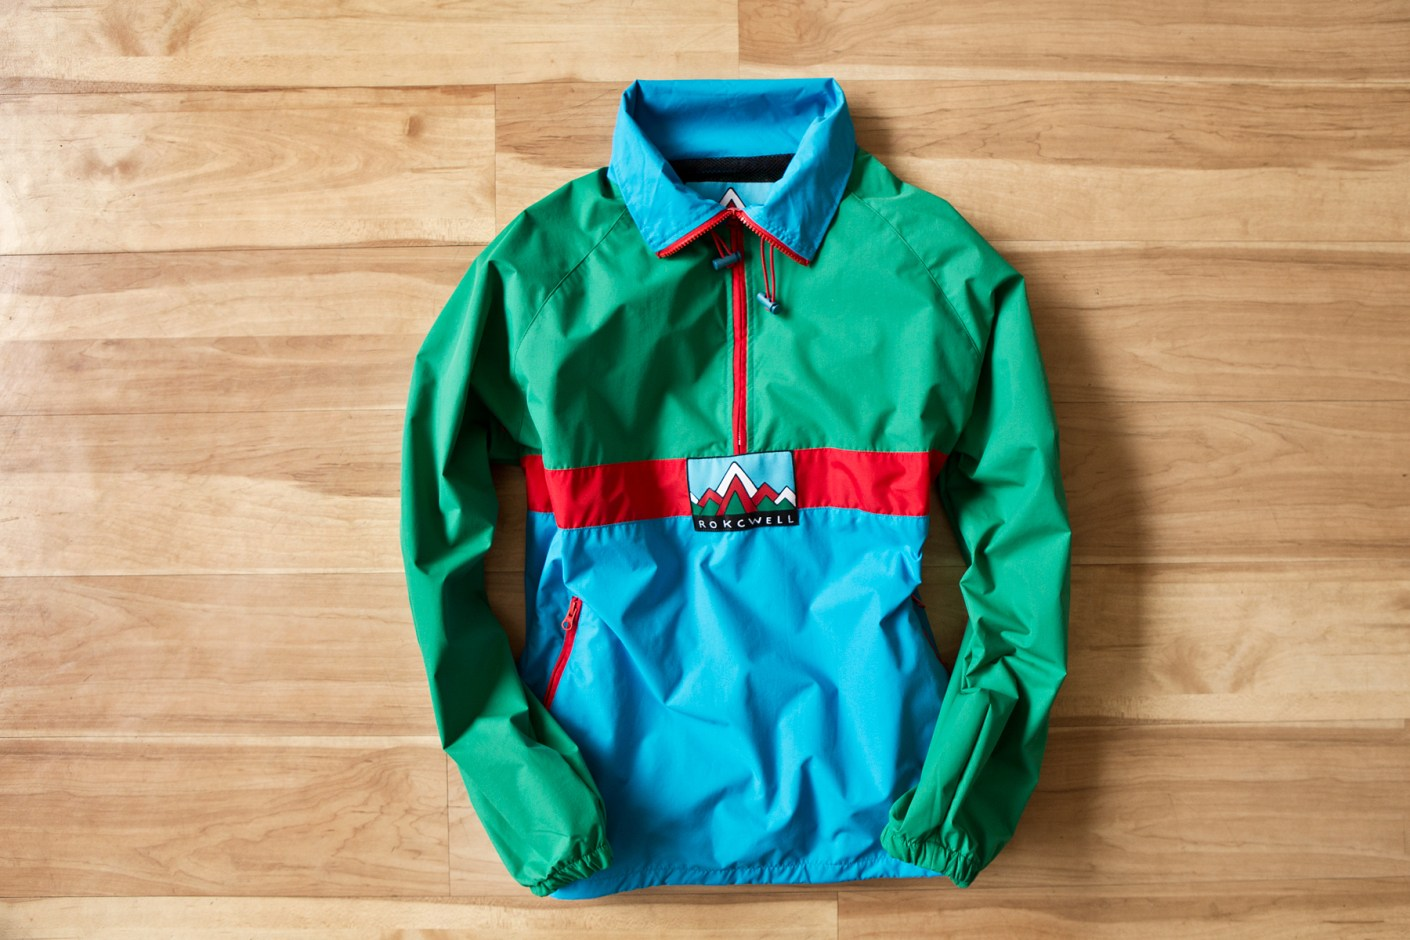 Image of Rockwell by Parra 2014 Spring/Summer Nylon Windbreaker